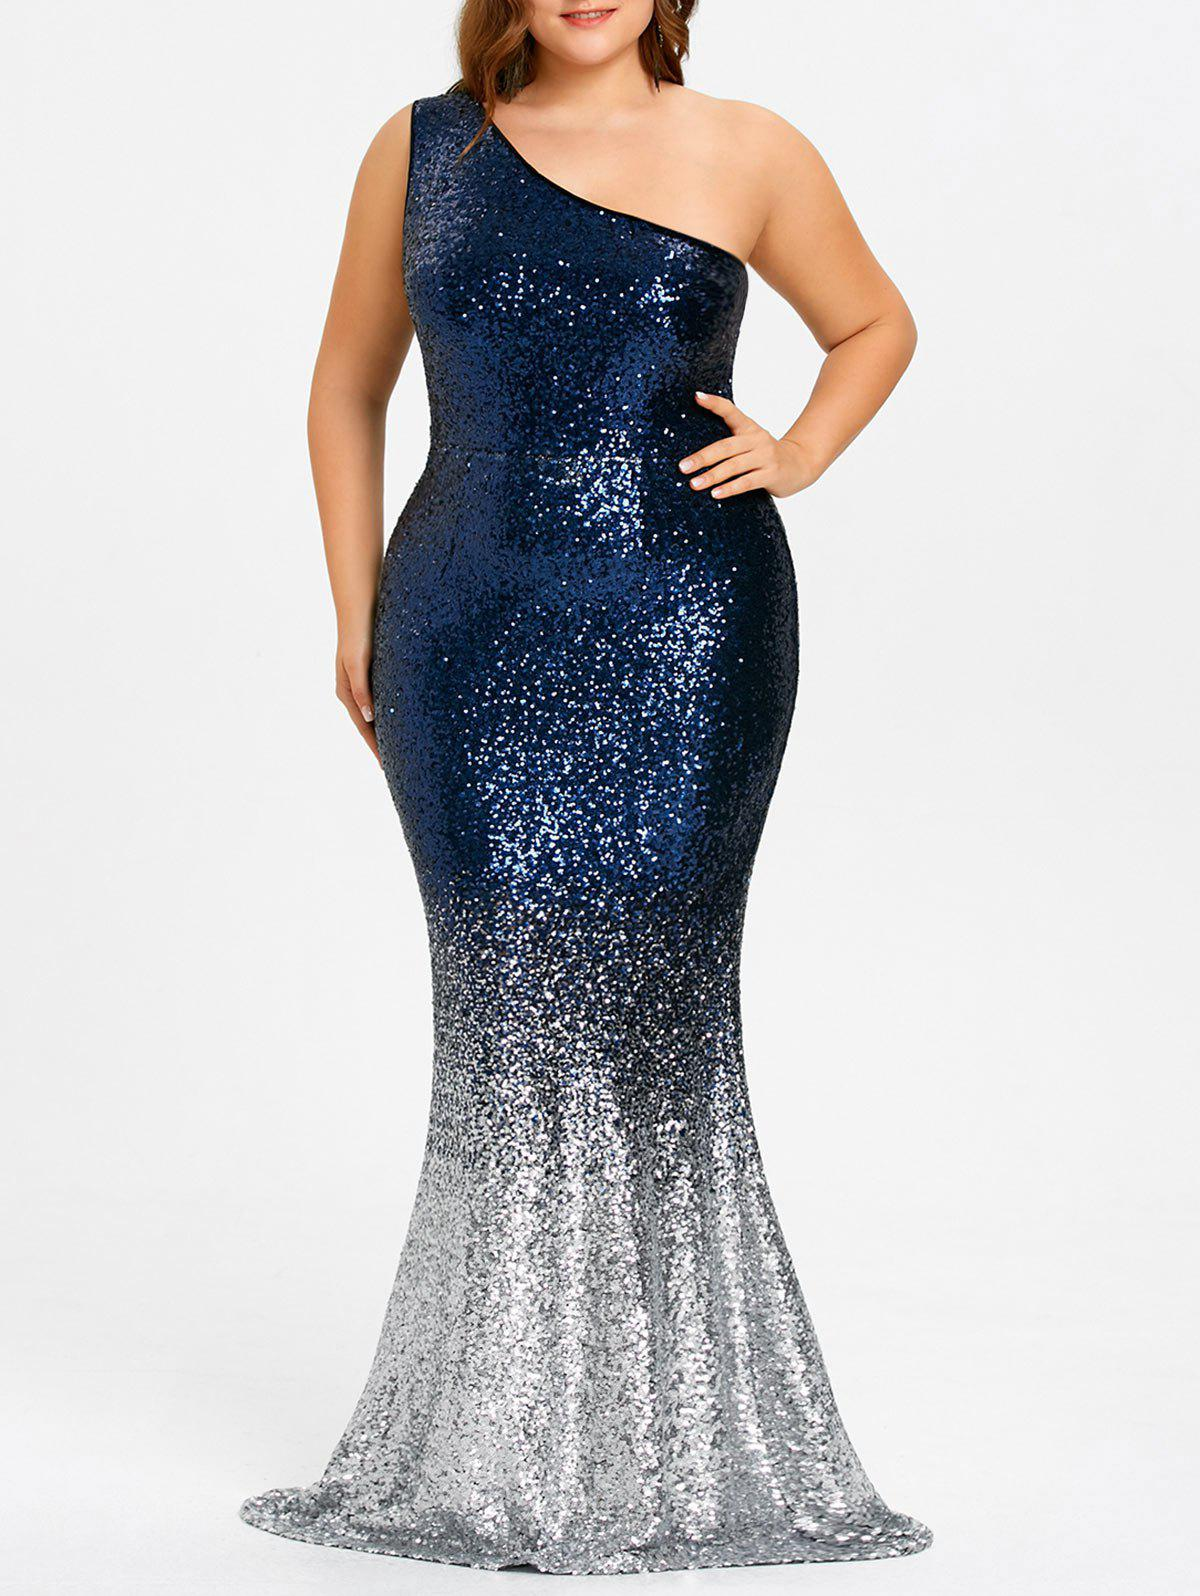 Plus Size One Shoulder Glittering Mermaid Dress the one plus one